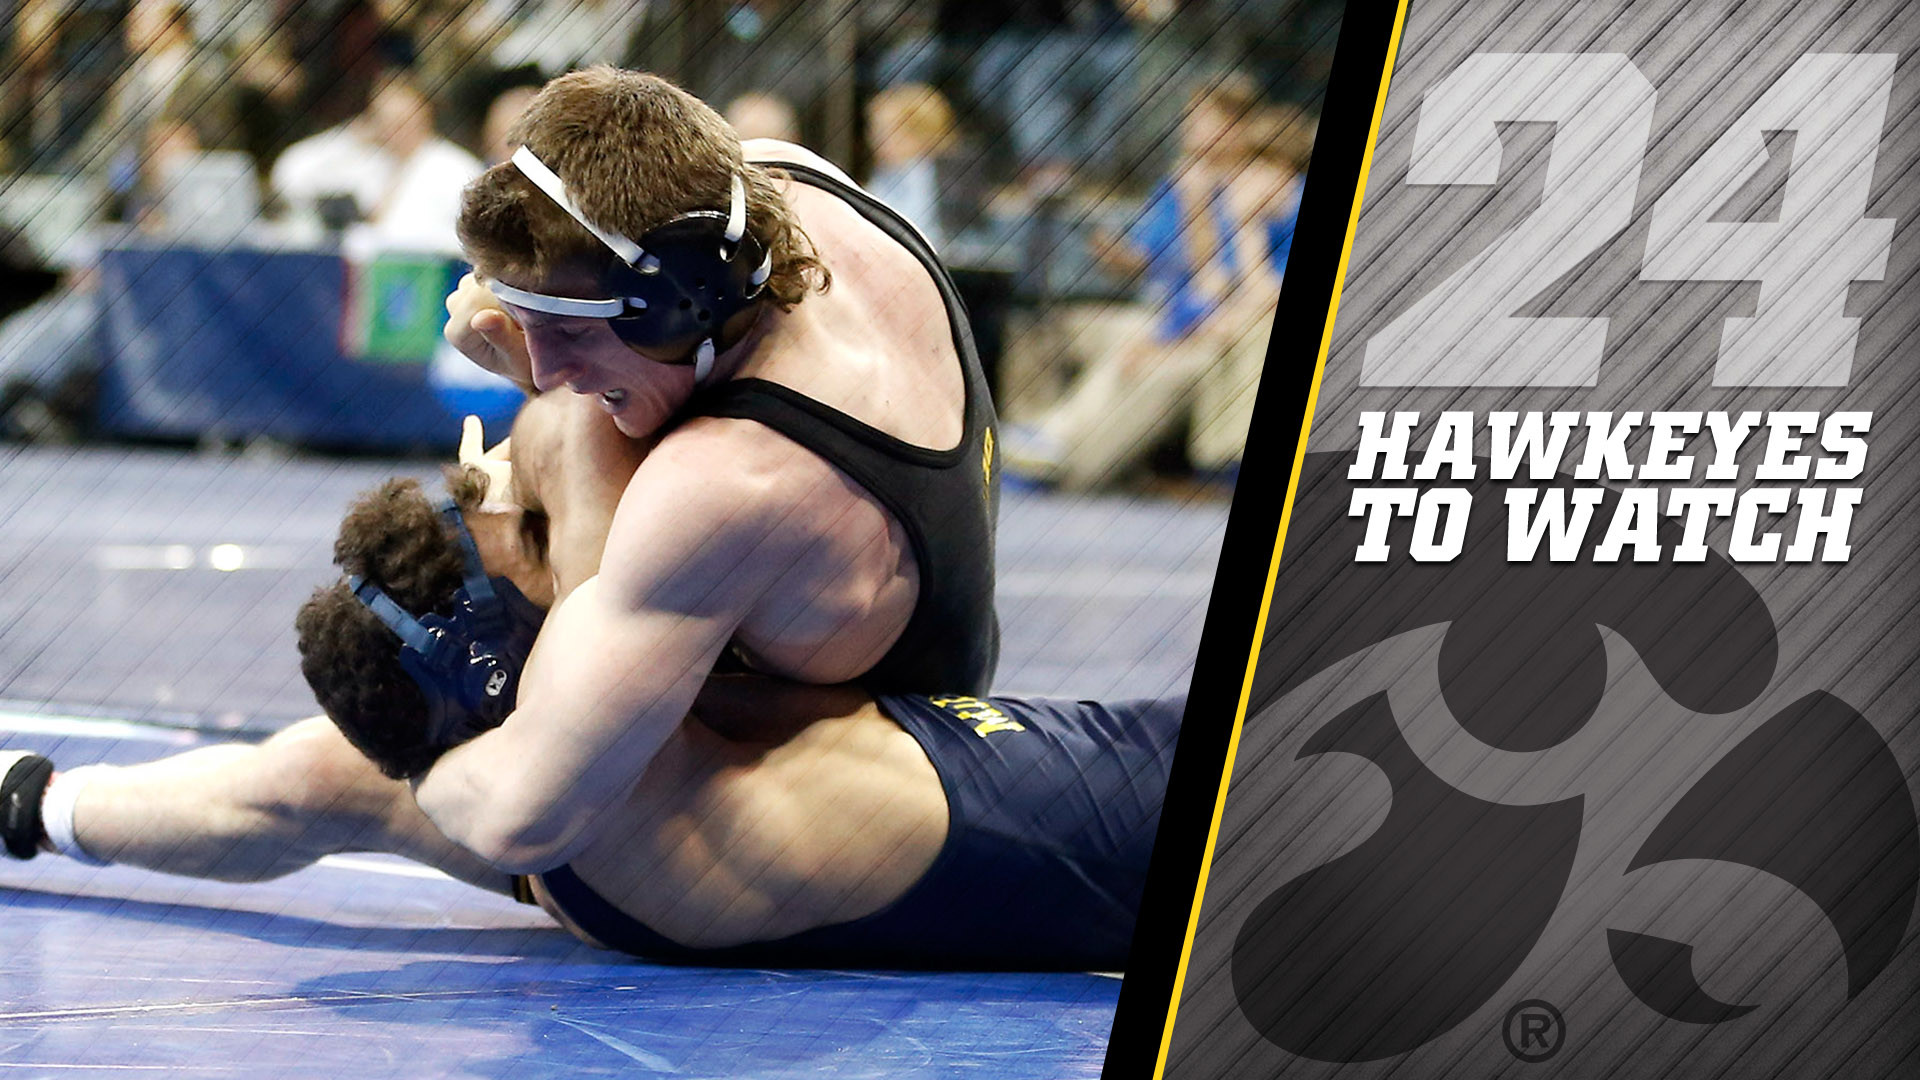 1920x1080 24 Hawkeyes to Watch: Sammy Brooks